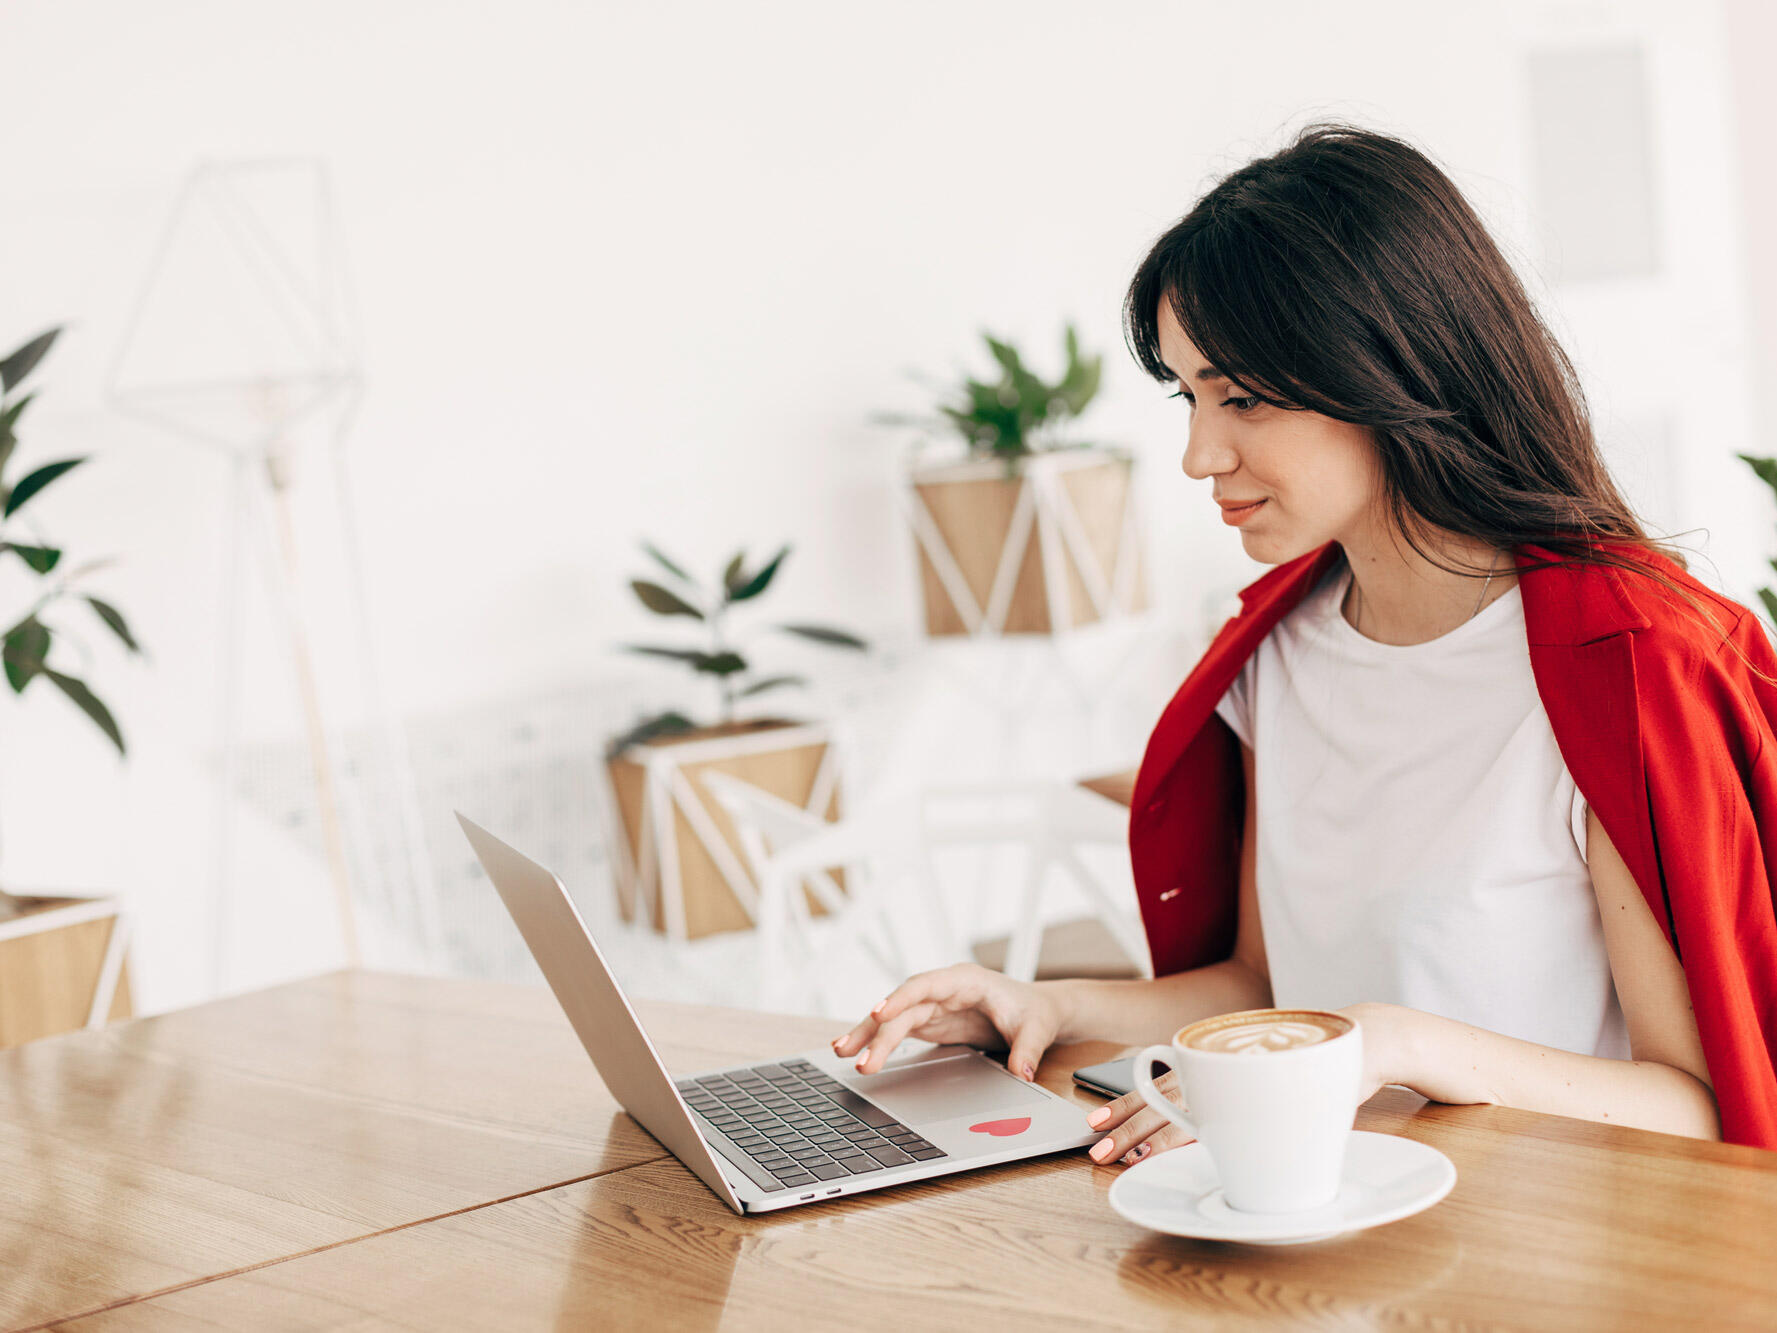 A lady working on the laptop while drinking coffee